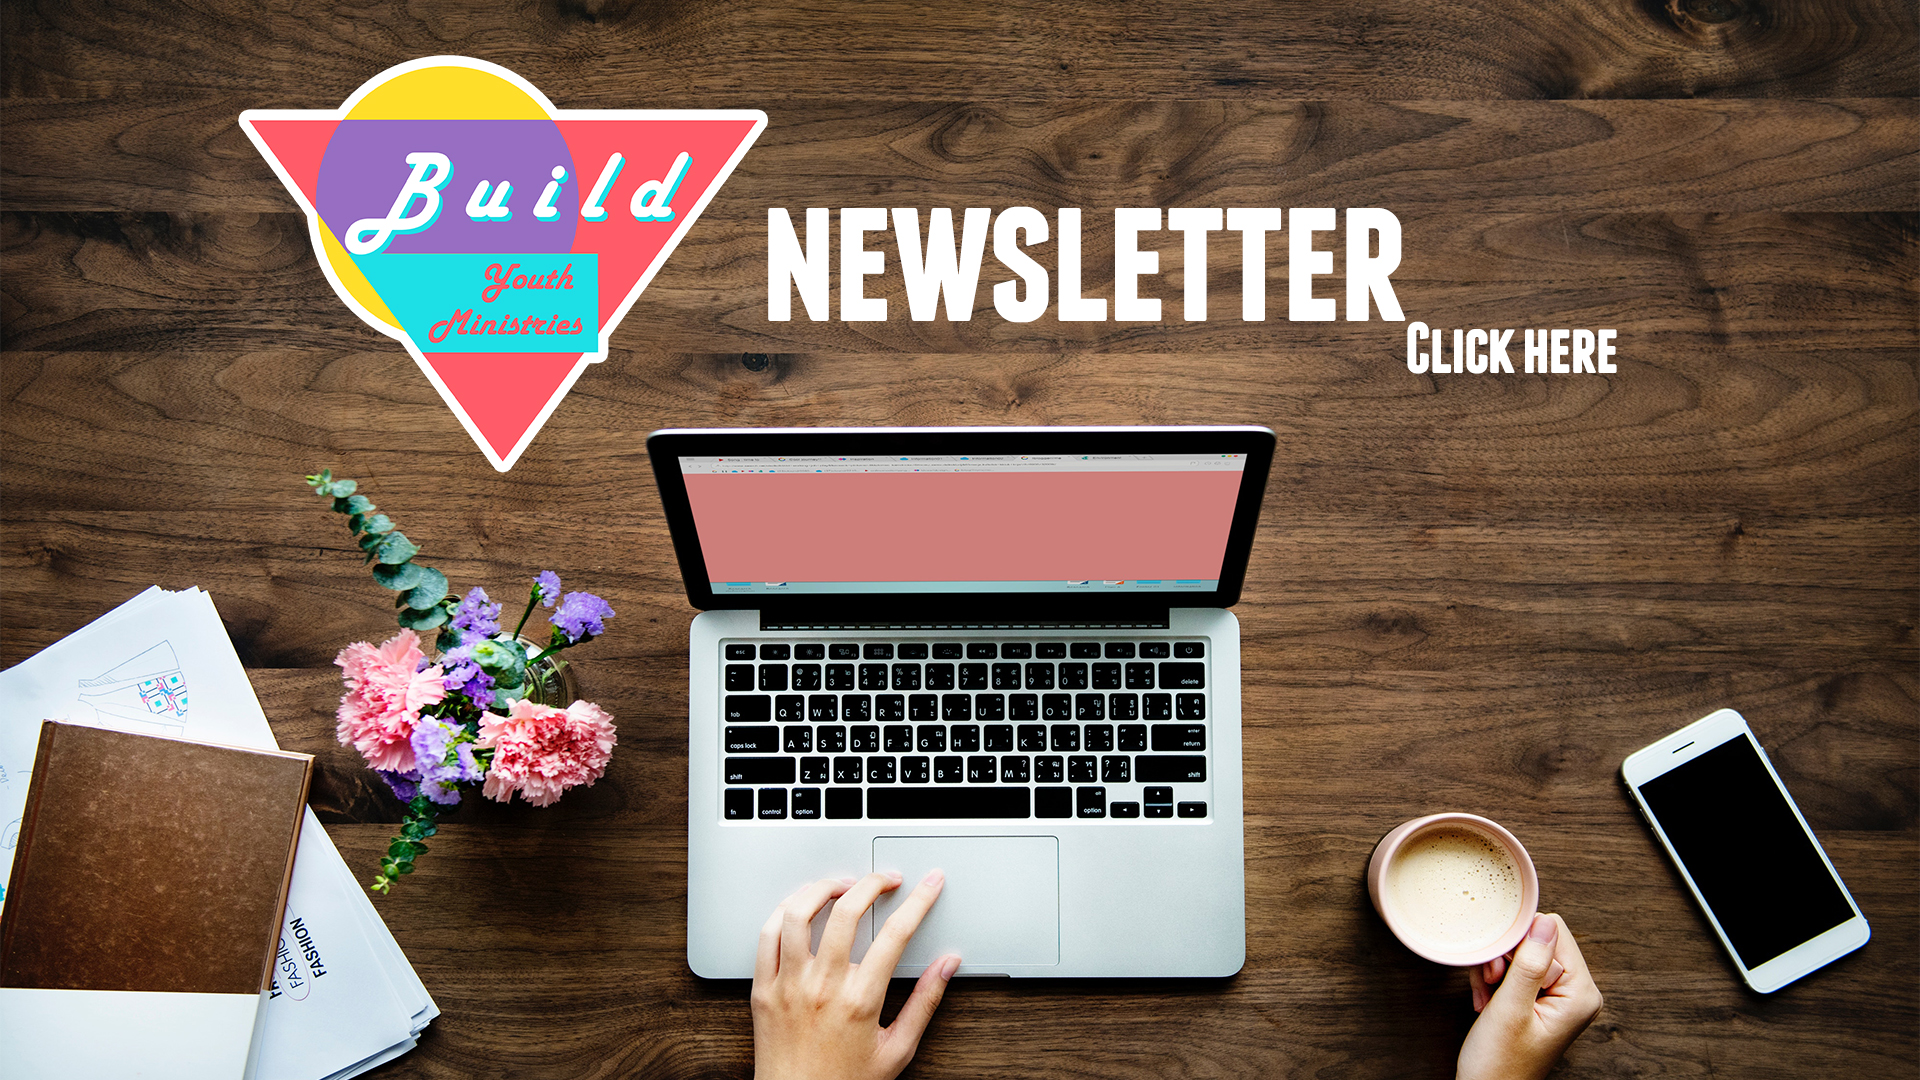 Build Newsletter Logo